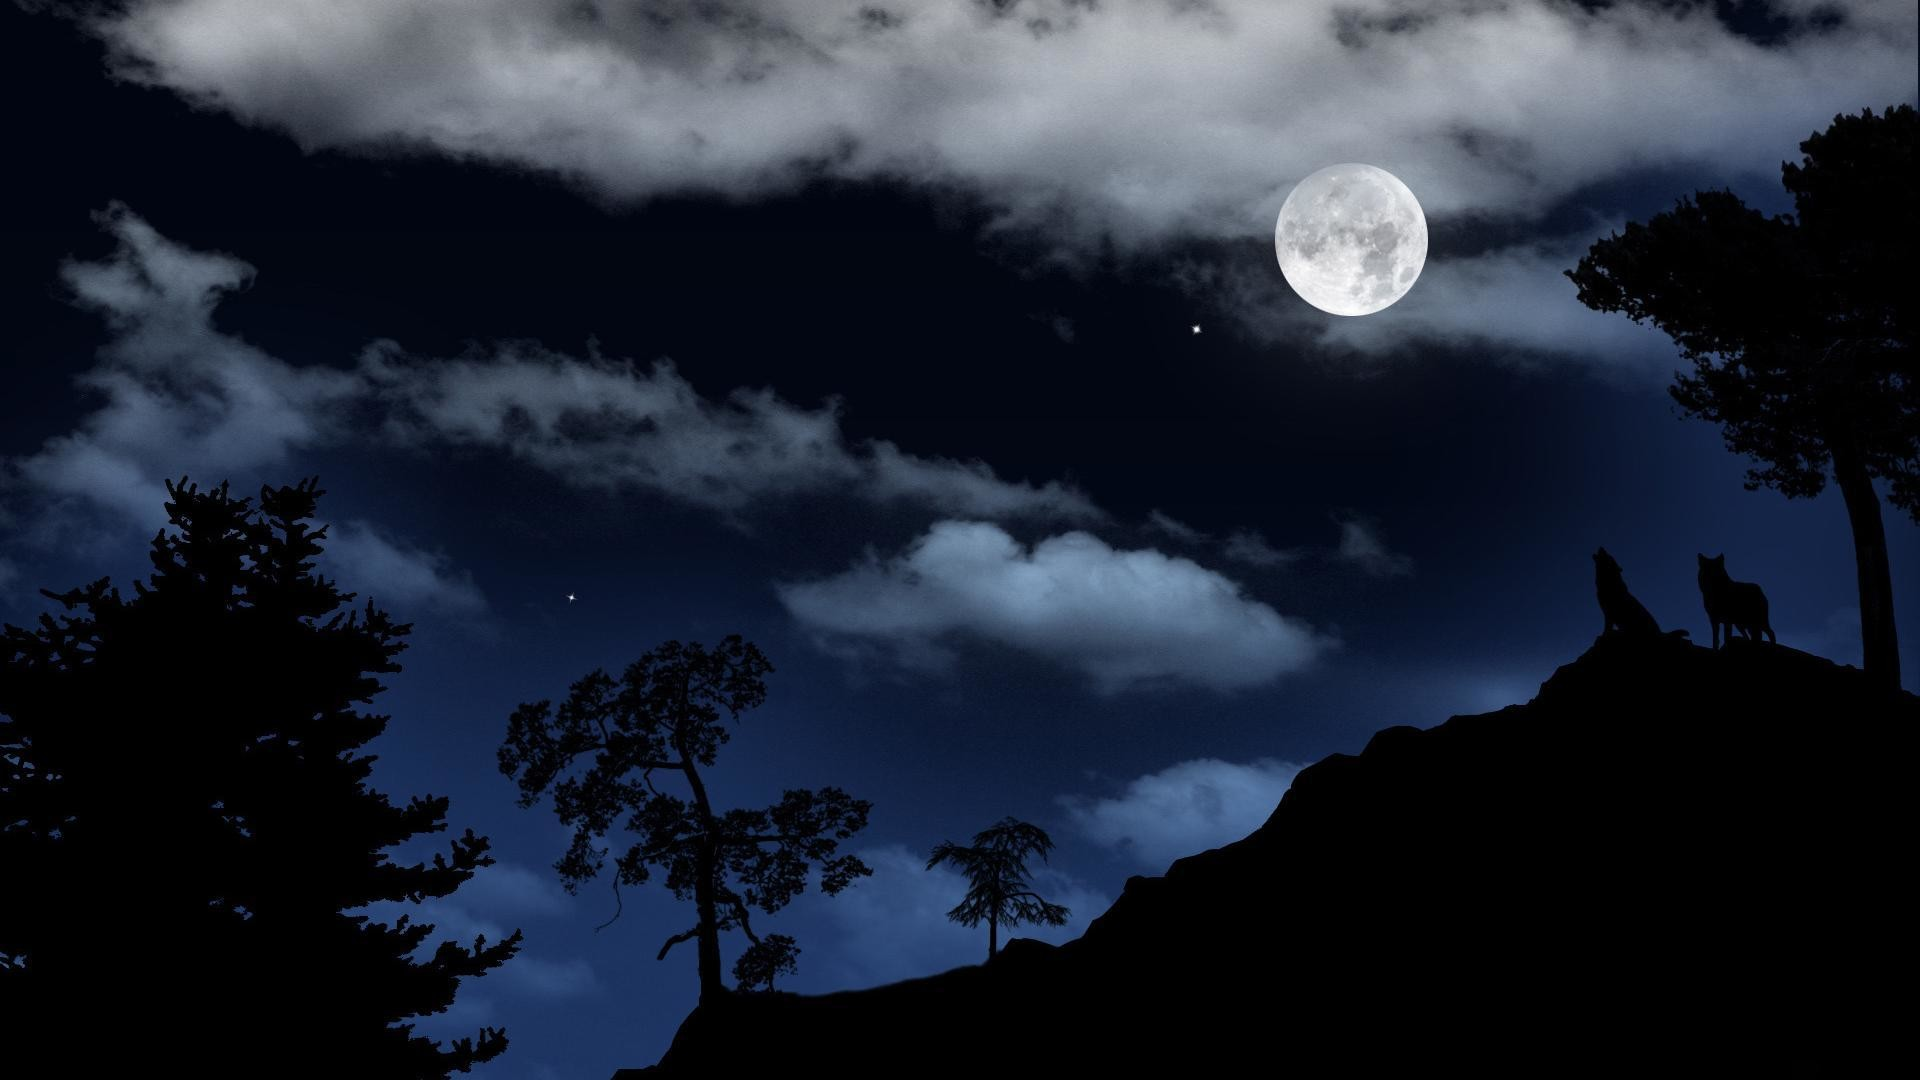 wolf howling at the moon wallpaper 66 images